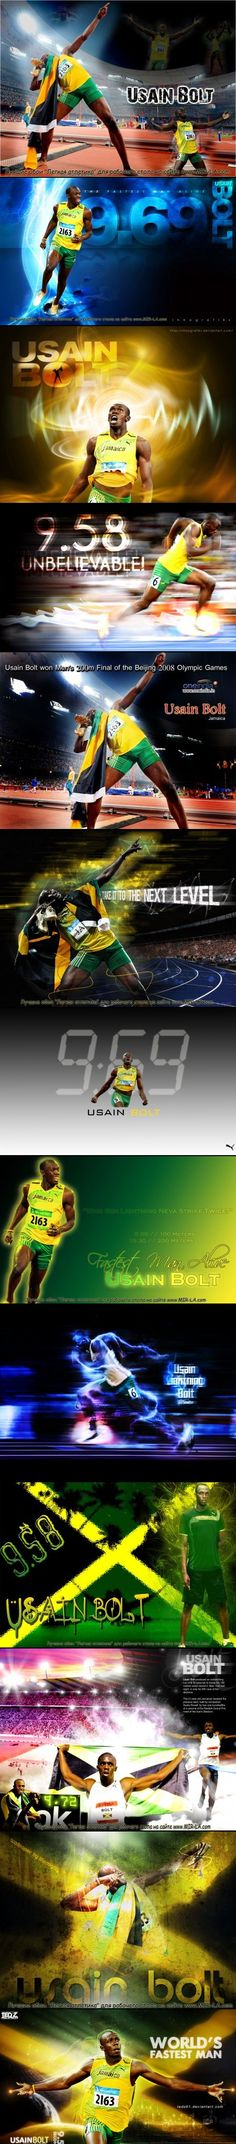 Usain St. Leo Bolt - (born 21 August 1986) is a Jamaican sprinter widely regarded as the fastest person ever. He is the 1st man to hold both the 100 & 200 metres world records.  He also set the world record in the 4×100 metres relay. He is the reigning Olympic champion in these 3 events, the 1st man to win 6 Olympic gold medals in sprinting, and an 8-time World champion.